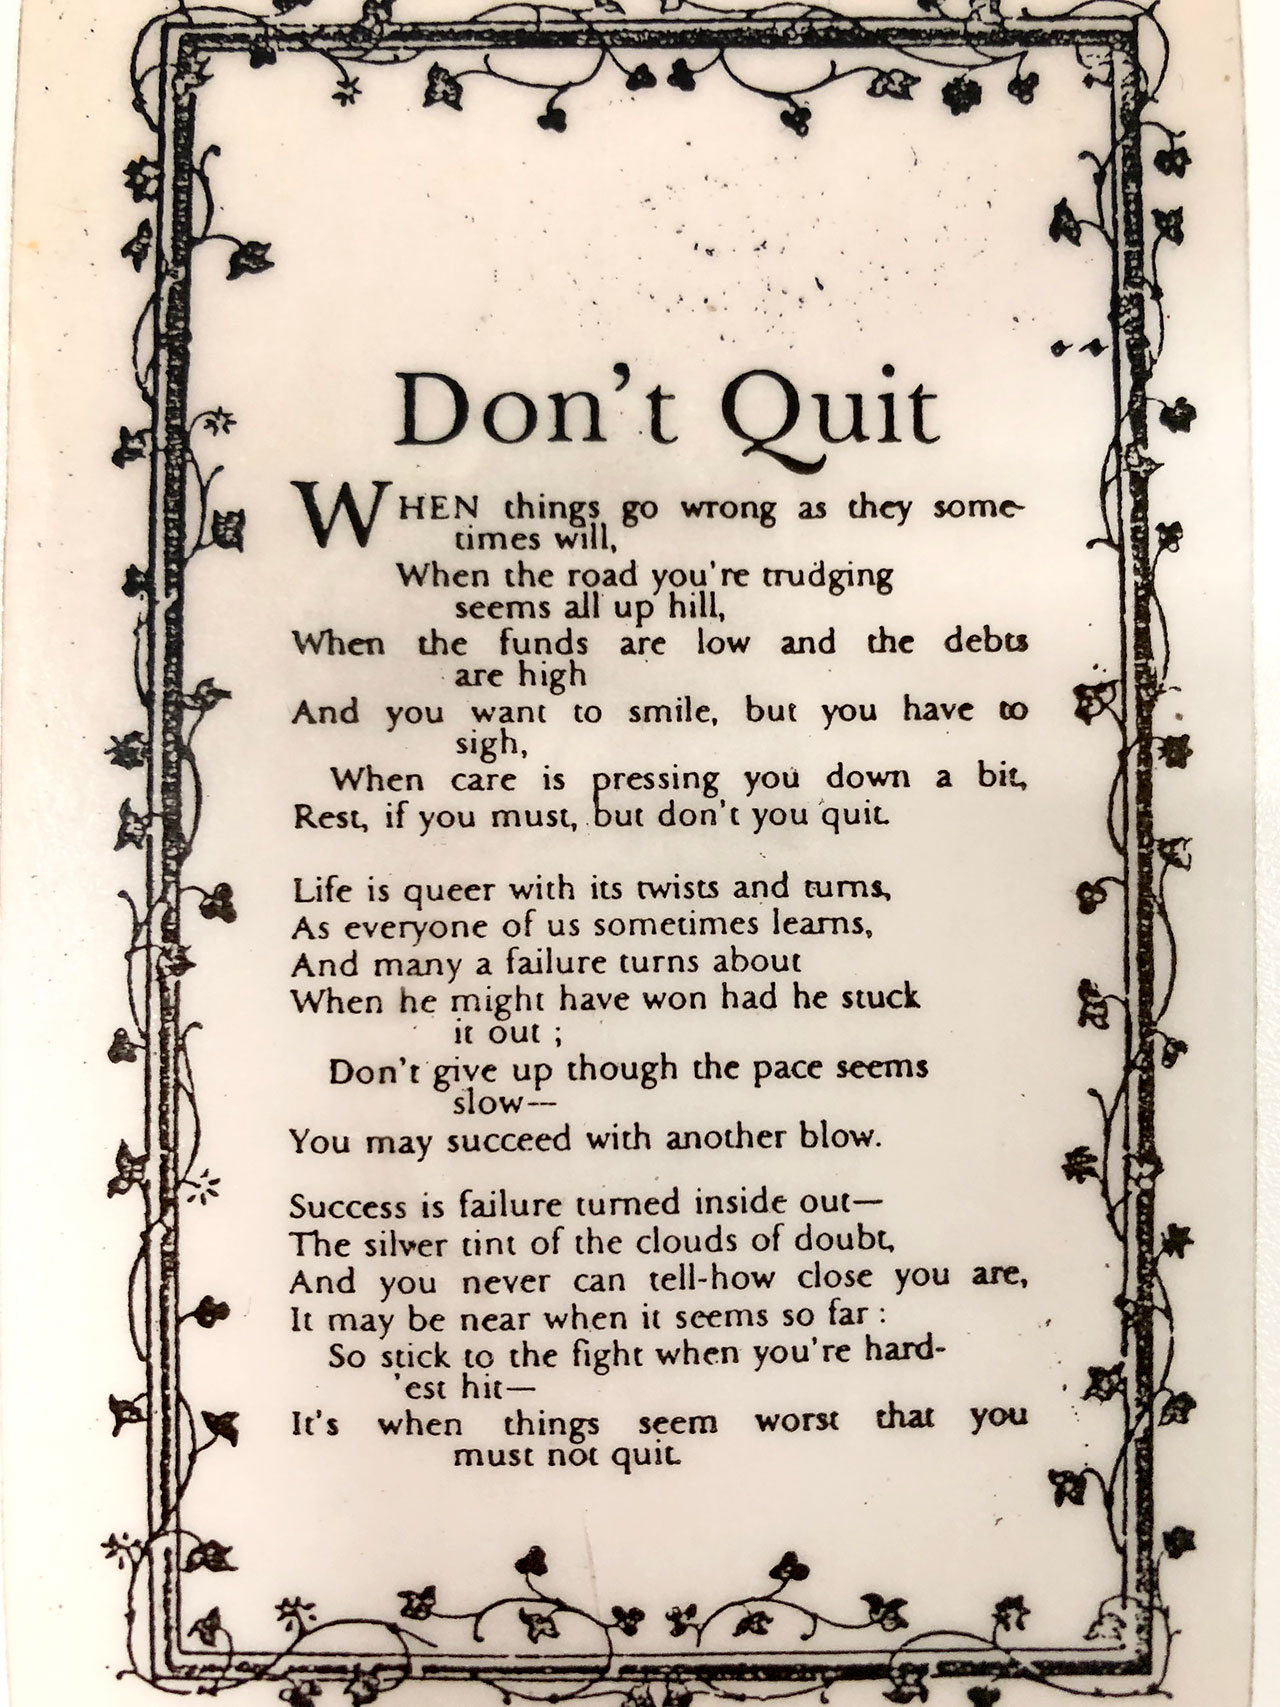 'Don't Quit', poem probably written by John Greenleaf Whittier (1807-1892). Jacques Arpels often gave to his staff four-leaf clovers picked from his garden along with this ode to perseverance and good fortune. © Van Cleef & Arpels.